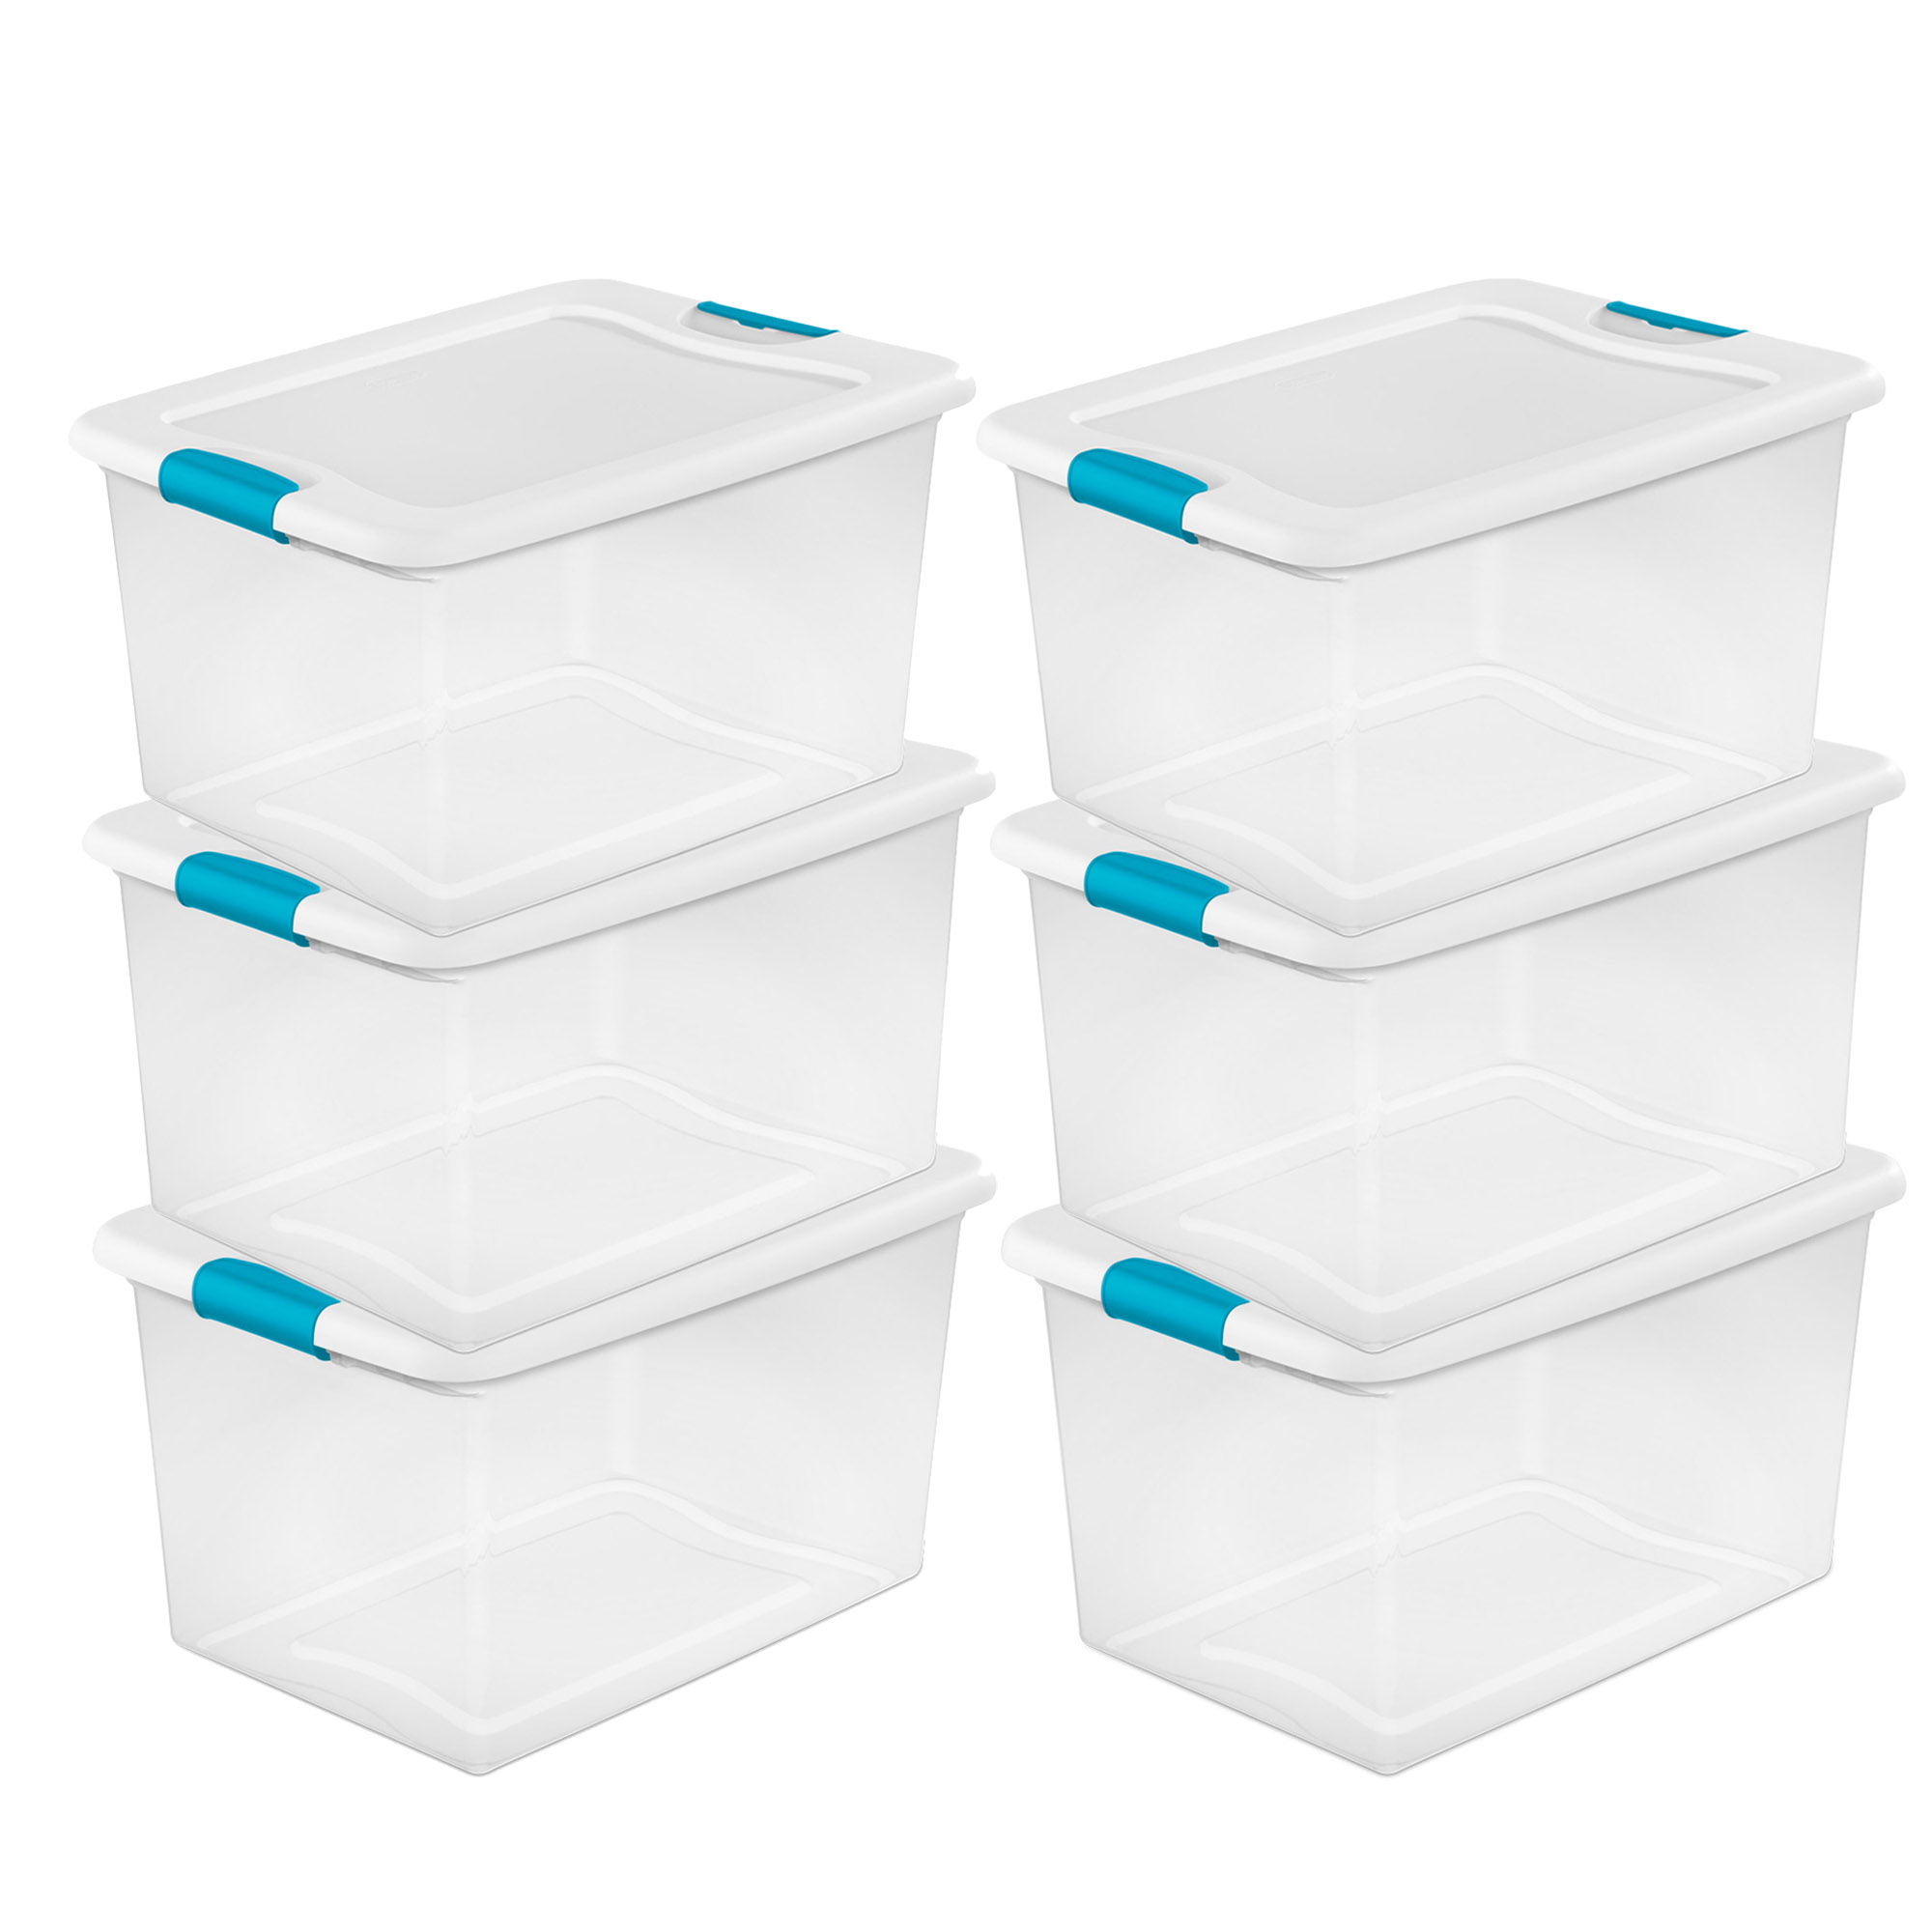 Sterilite 64 Quart Clear Plastic Storage Boxes Bins Totes w/ Latches (6  Pack) - Traveller Location